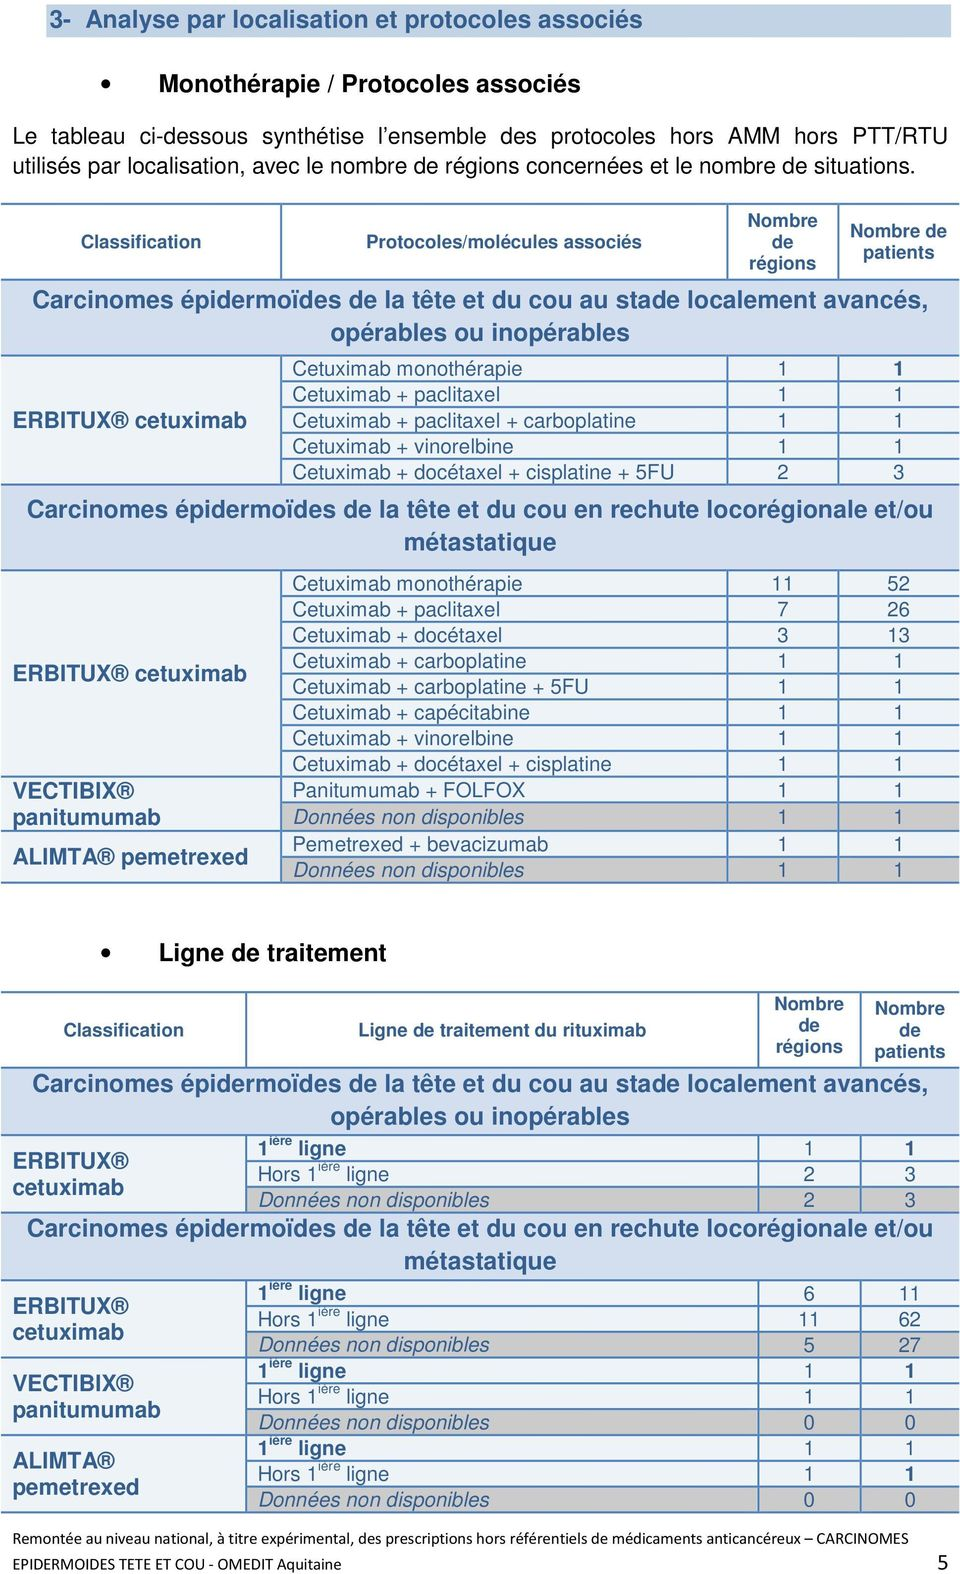 Classification Protocoles/molécules associés Nombre de régions Nombre de patients Carcinomes épidermoïdes de la tête et du cou au stade localement avancés, opérables ou inopérables ERBITUX cetuximab